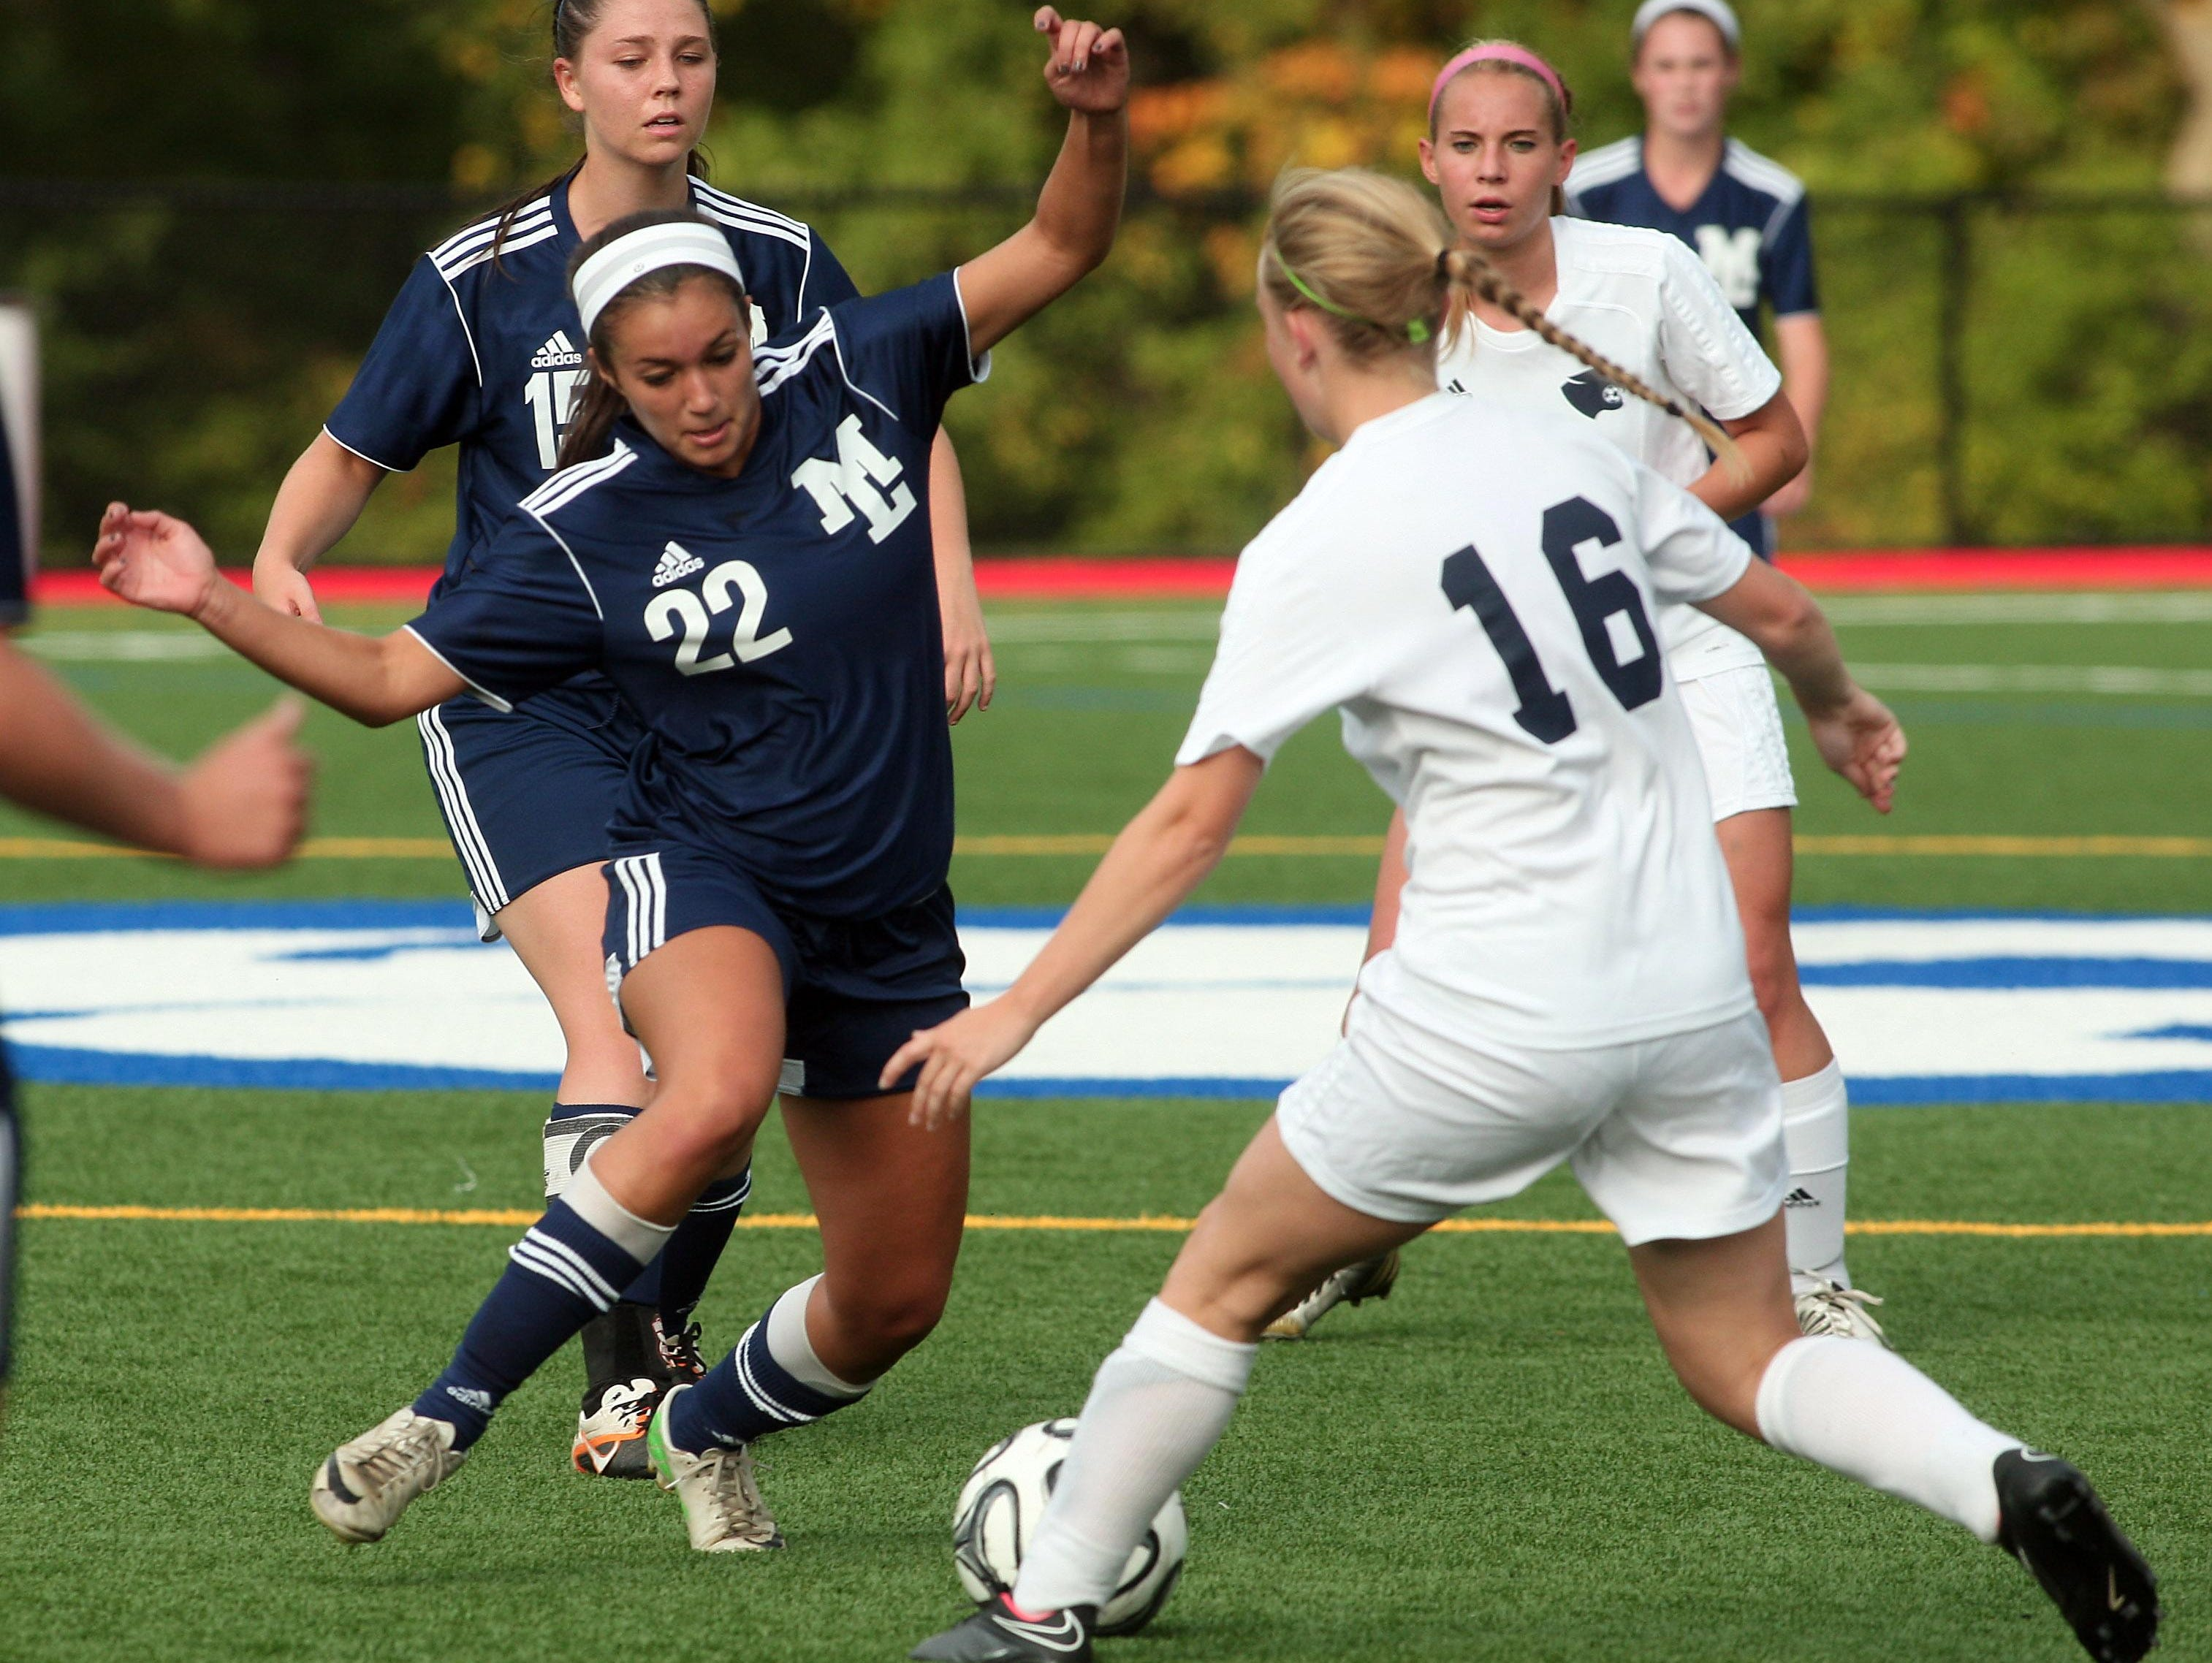 Mountain Lakes' Emee Fernandez (22) and Chatham's Grace Larson (16) battle for the ball on Sept. 30, 2014.